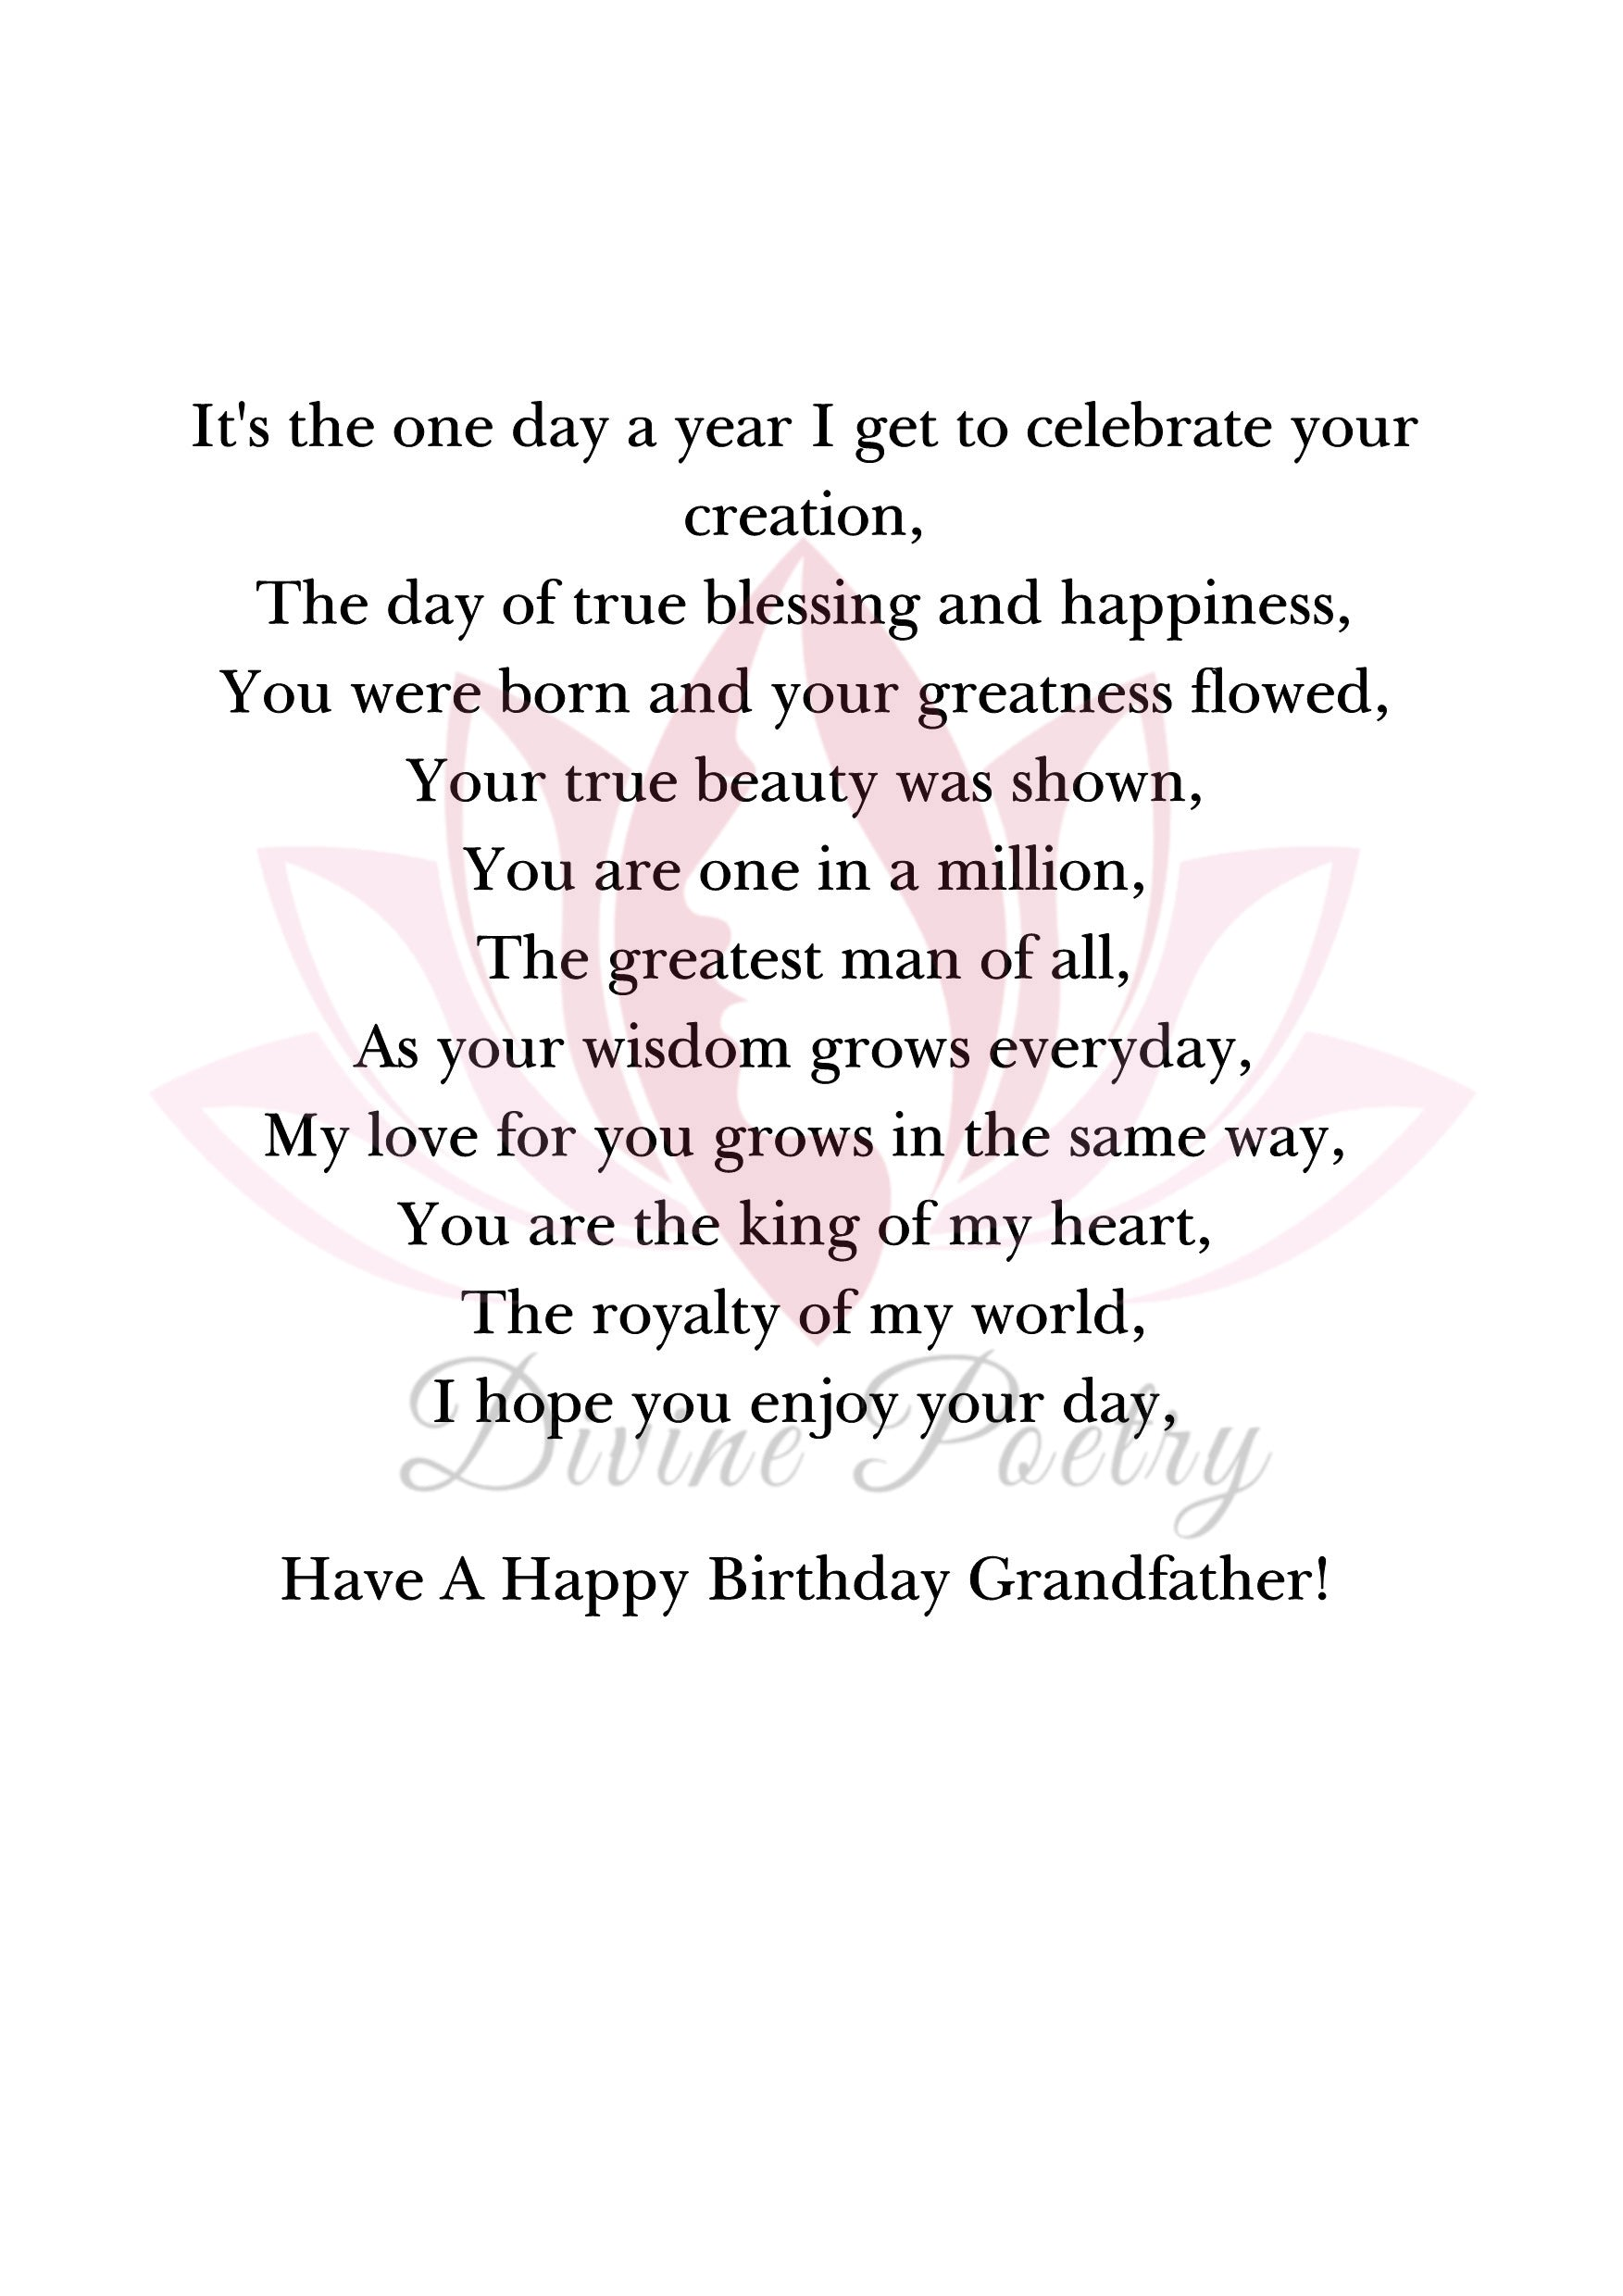 Have A Great Day Grandfather - Divine Poetry